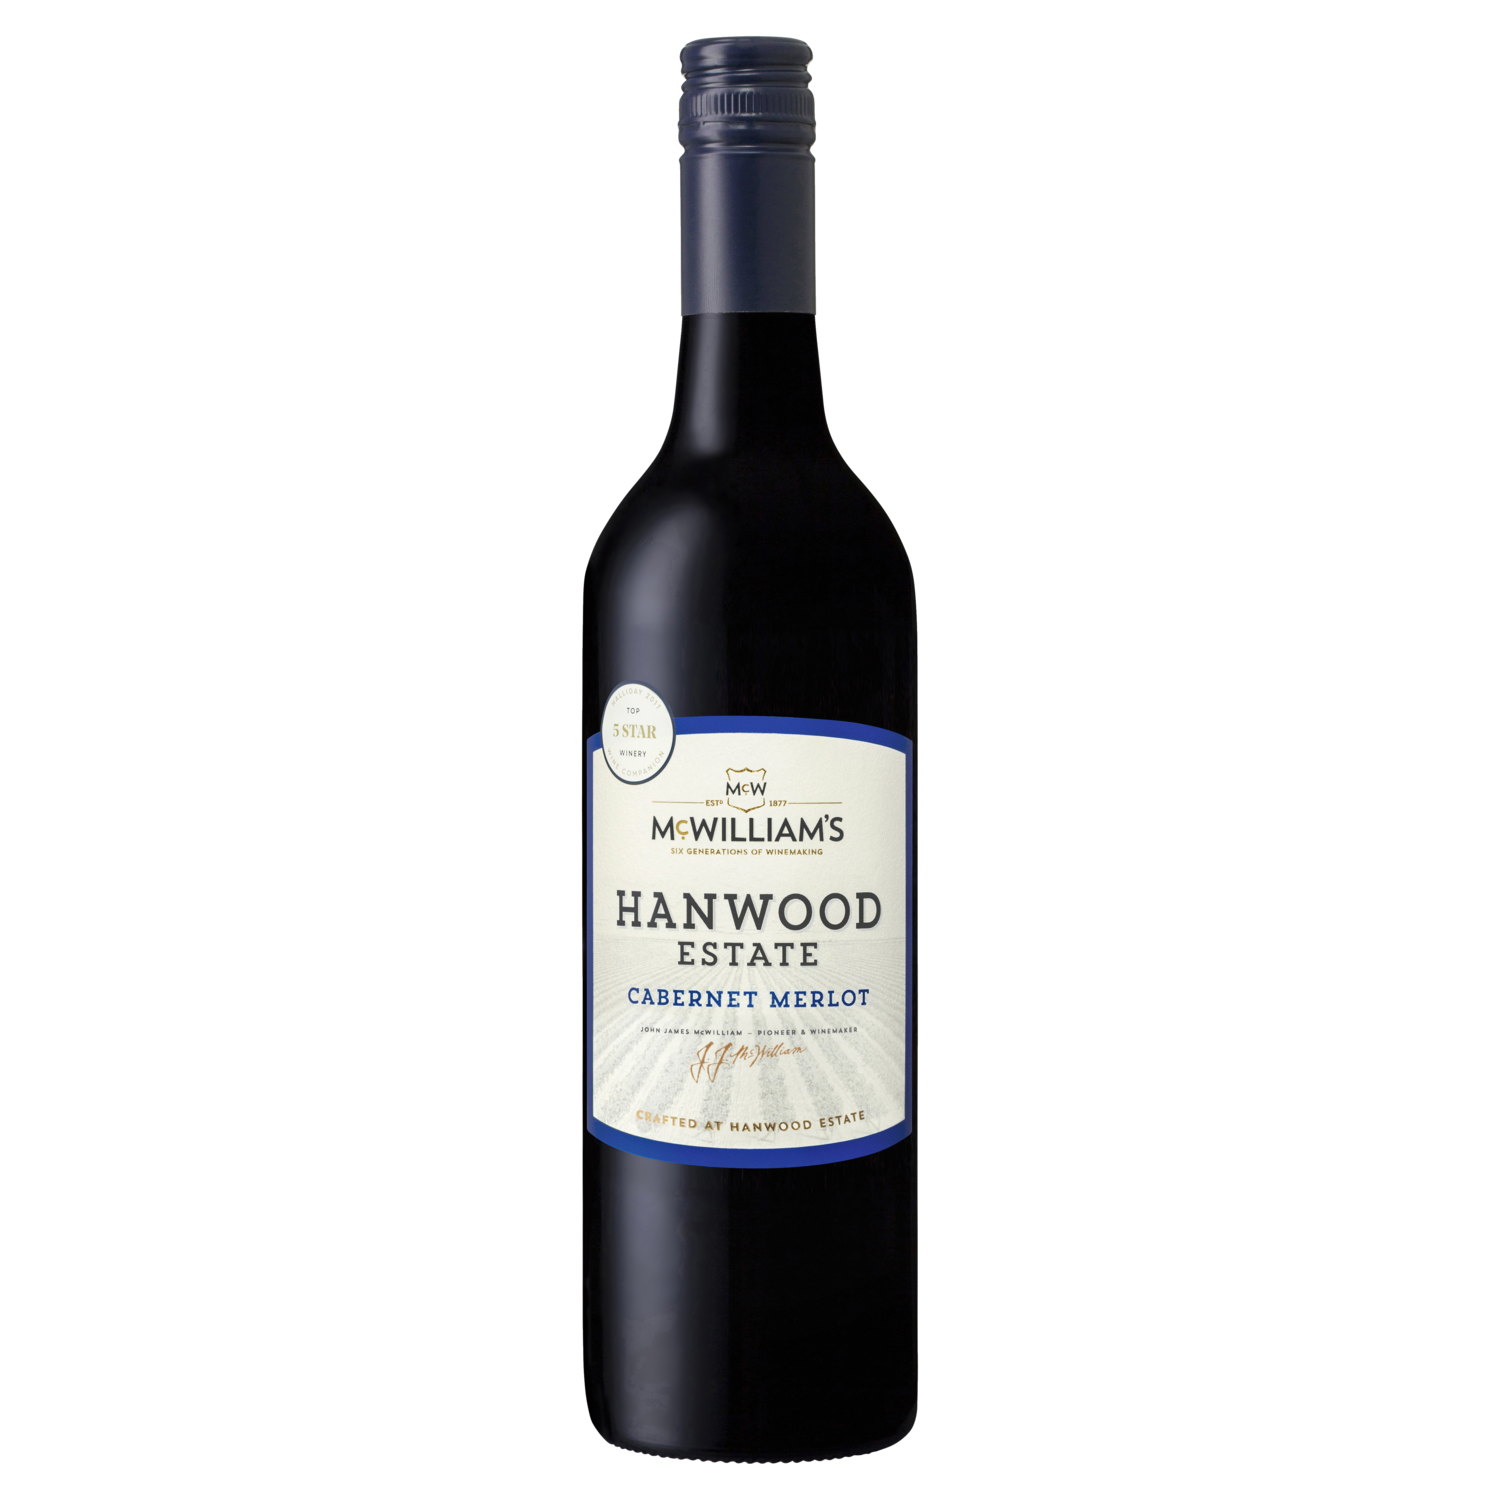 McWilliam's Hanwood Estate Cabernet Merlot